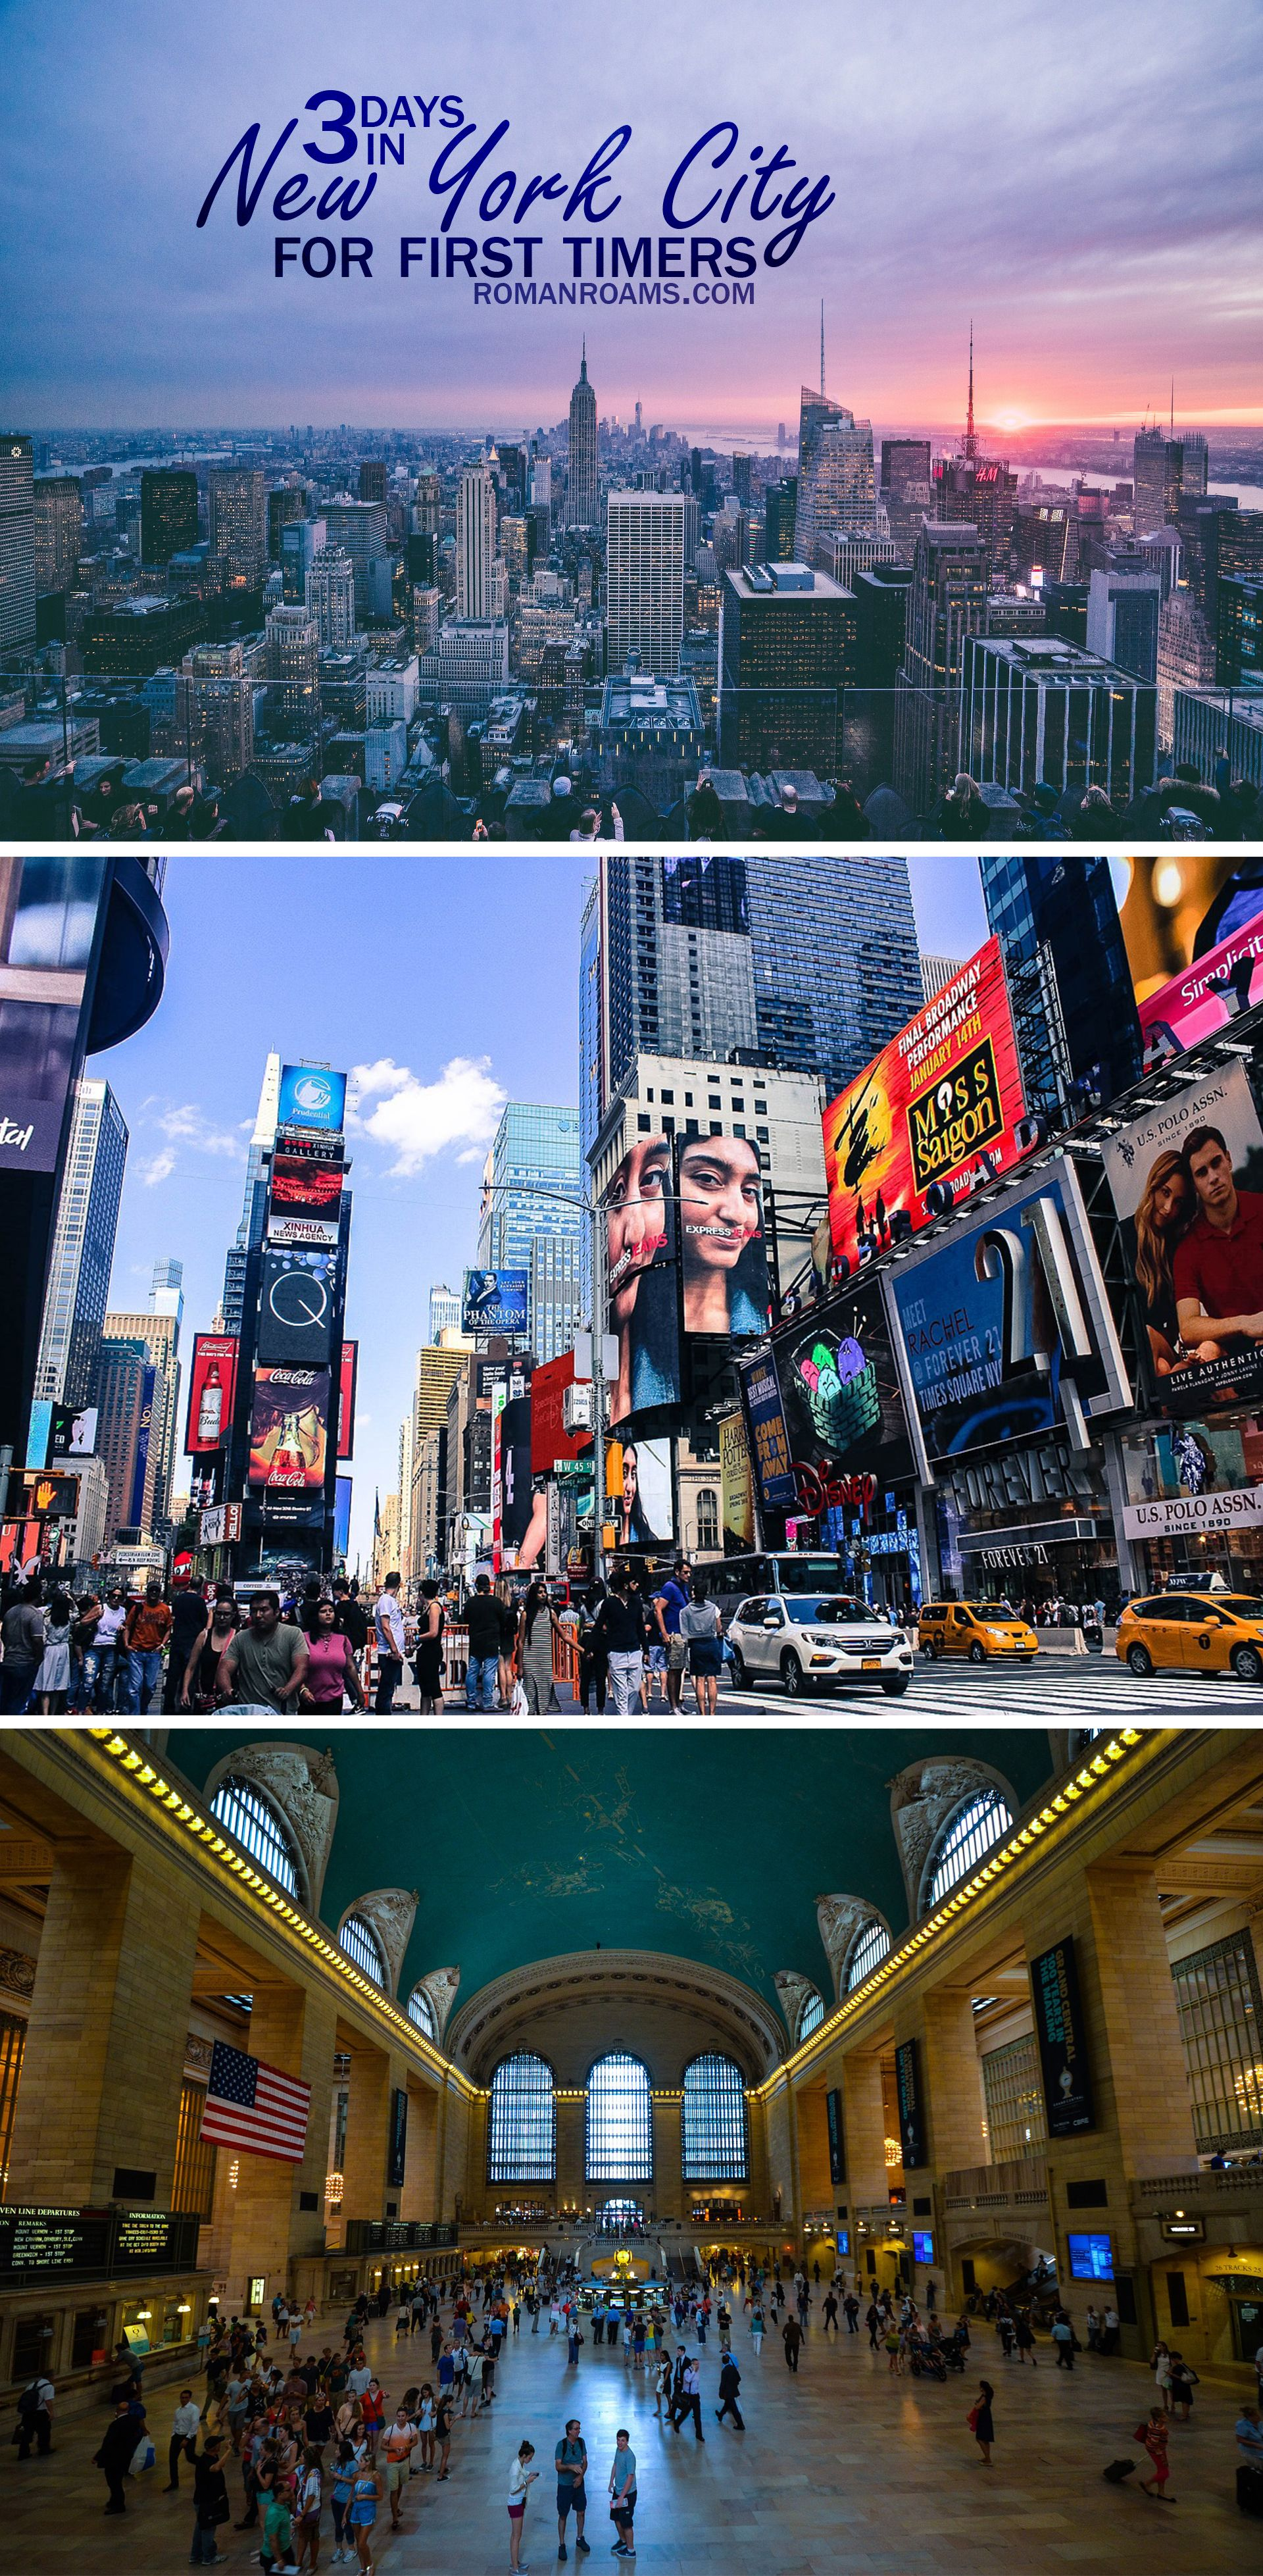 nyc attractions in 3 days new york is a huge city, but